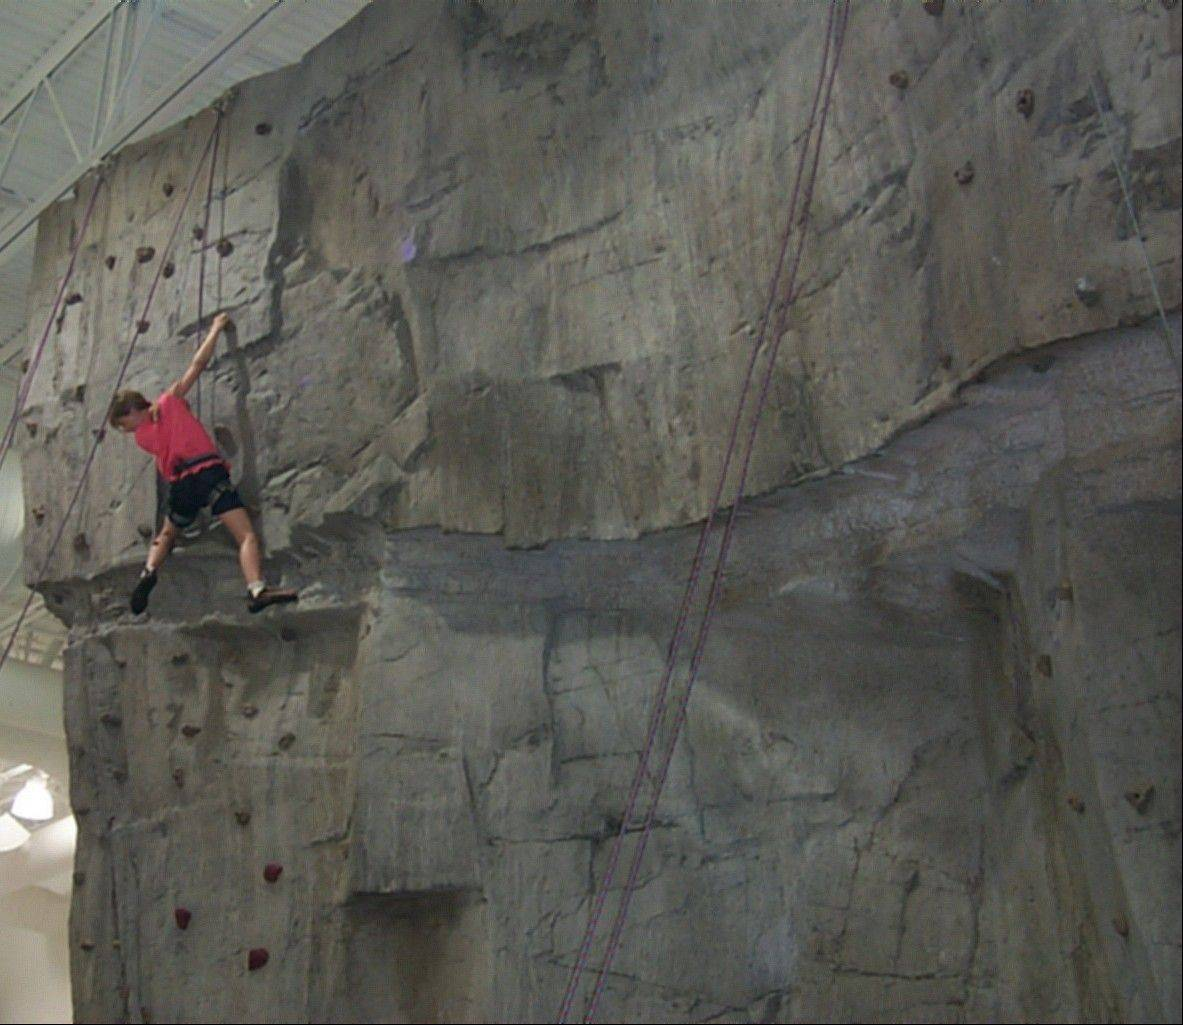 The rock wall at the Libertyville Sports Complex offers both manual and auto-belay routes.